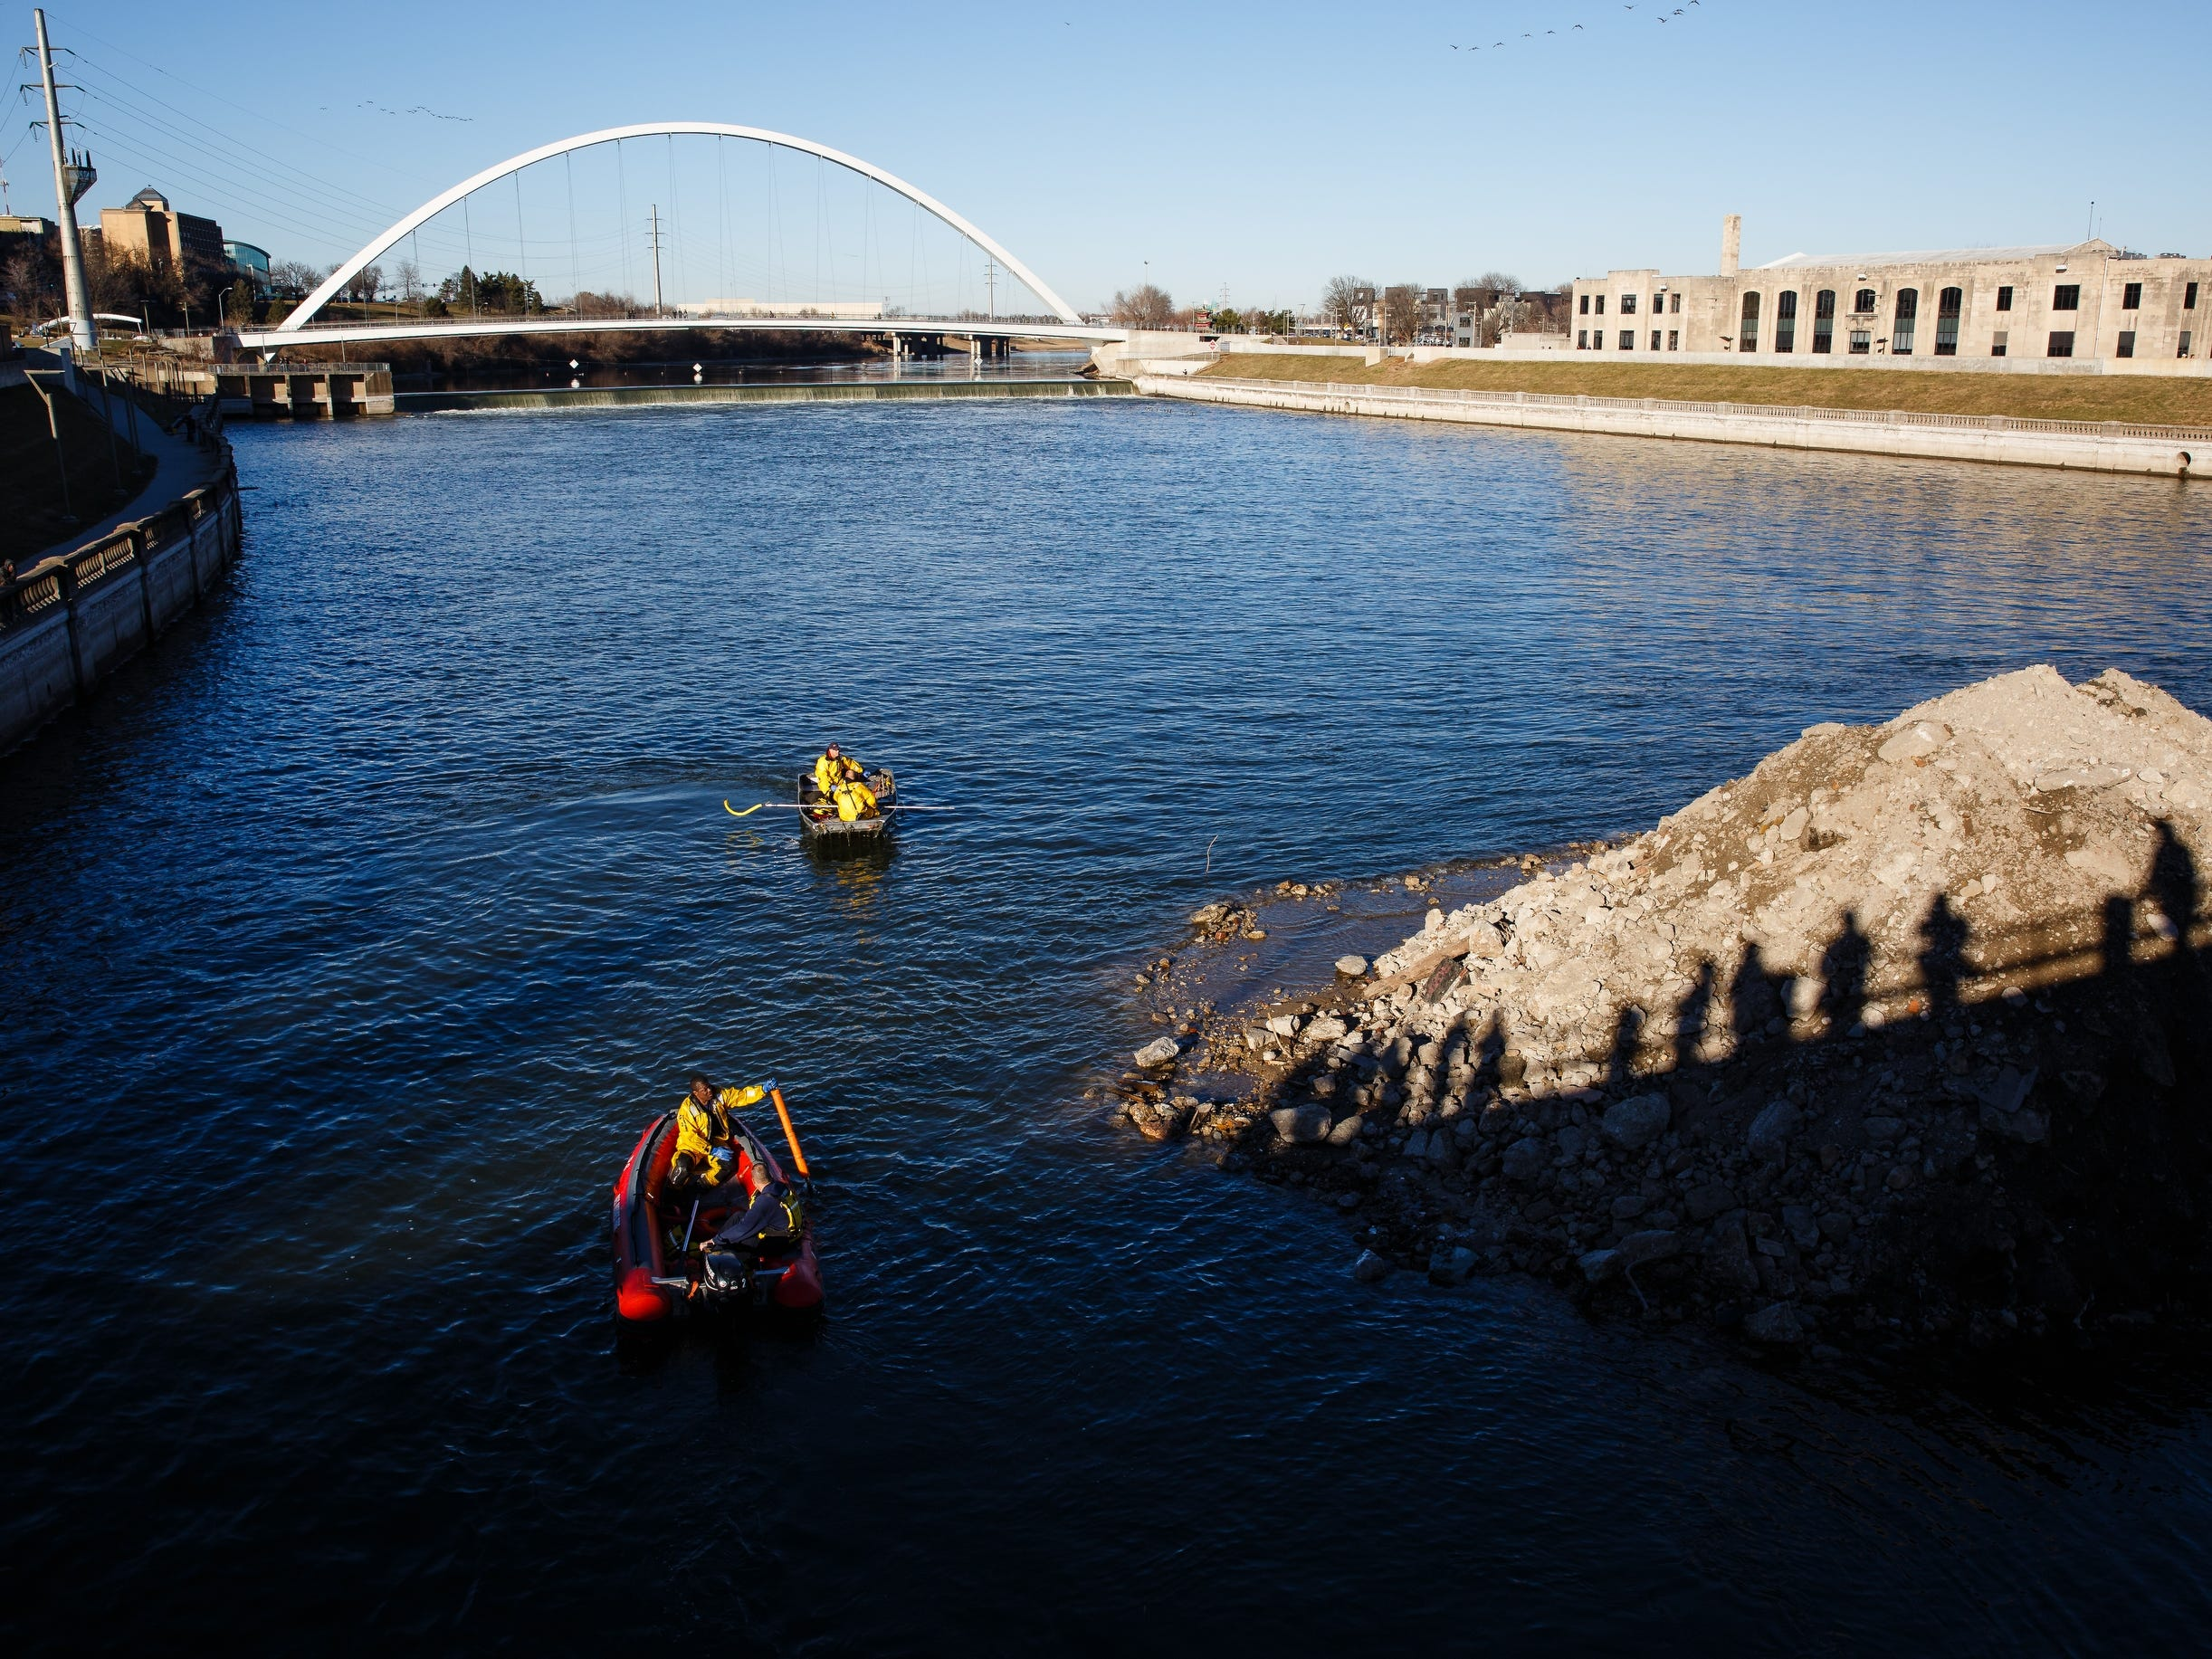 Emergency crews search for a body in the river under the Grand Avenue bridge on Saturday, Dec. 15, 2018, in Des Moines.